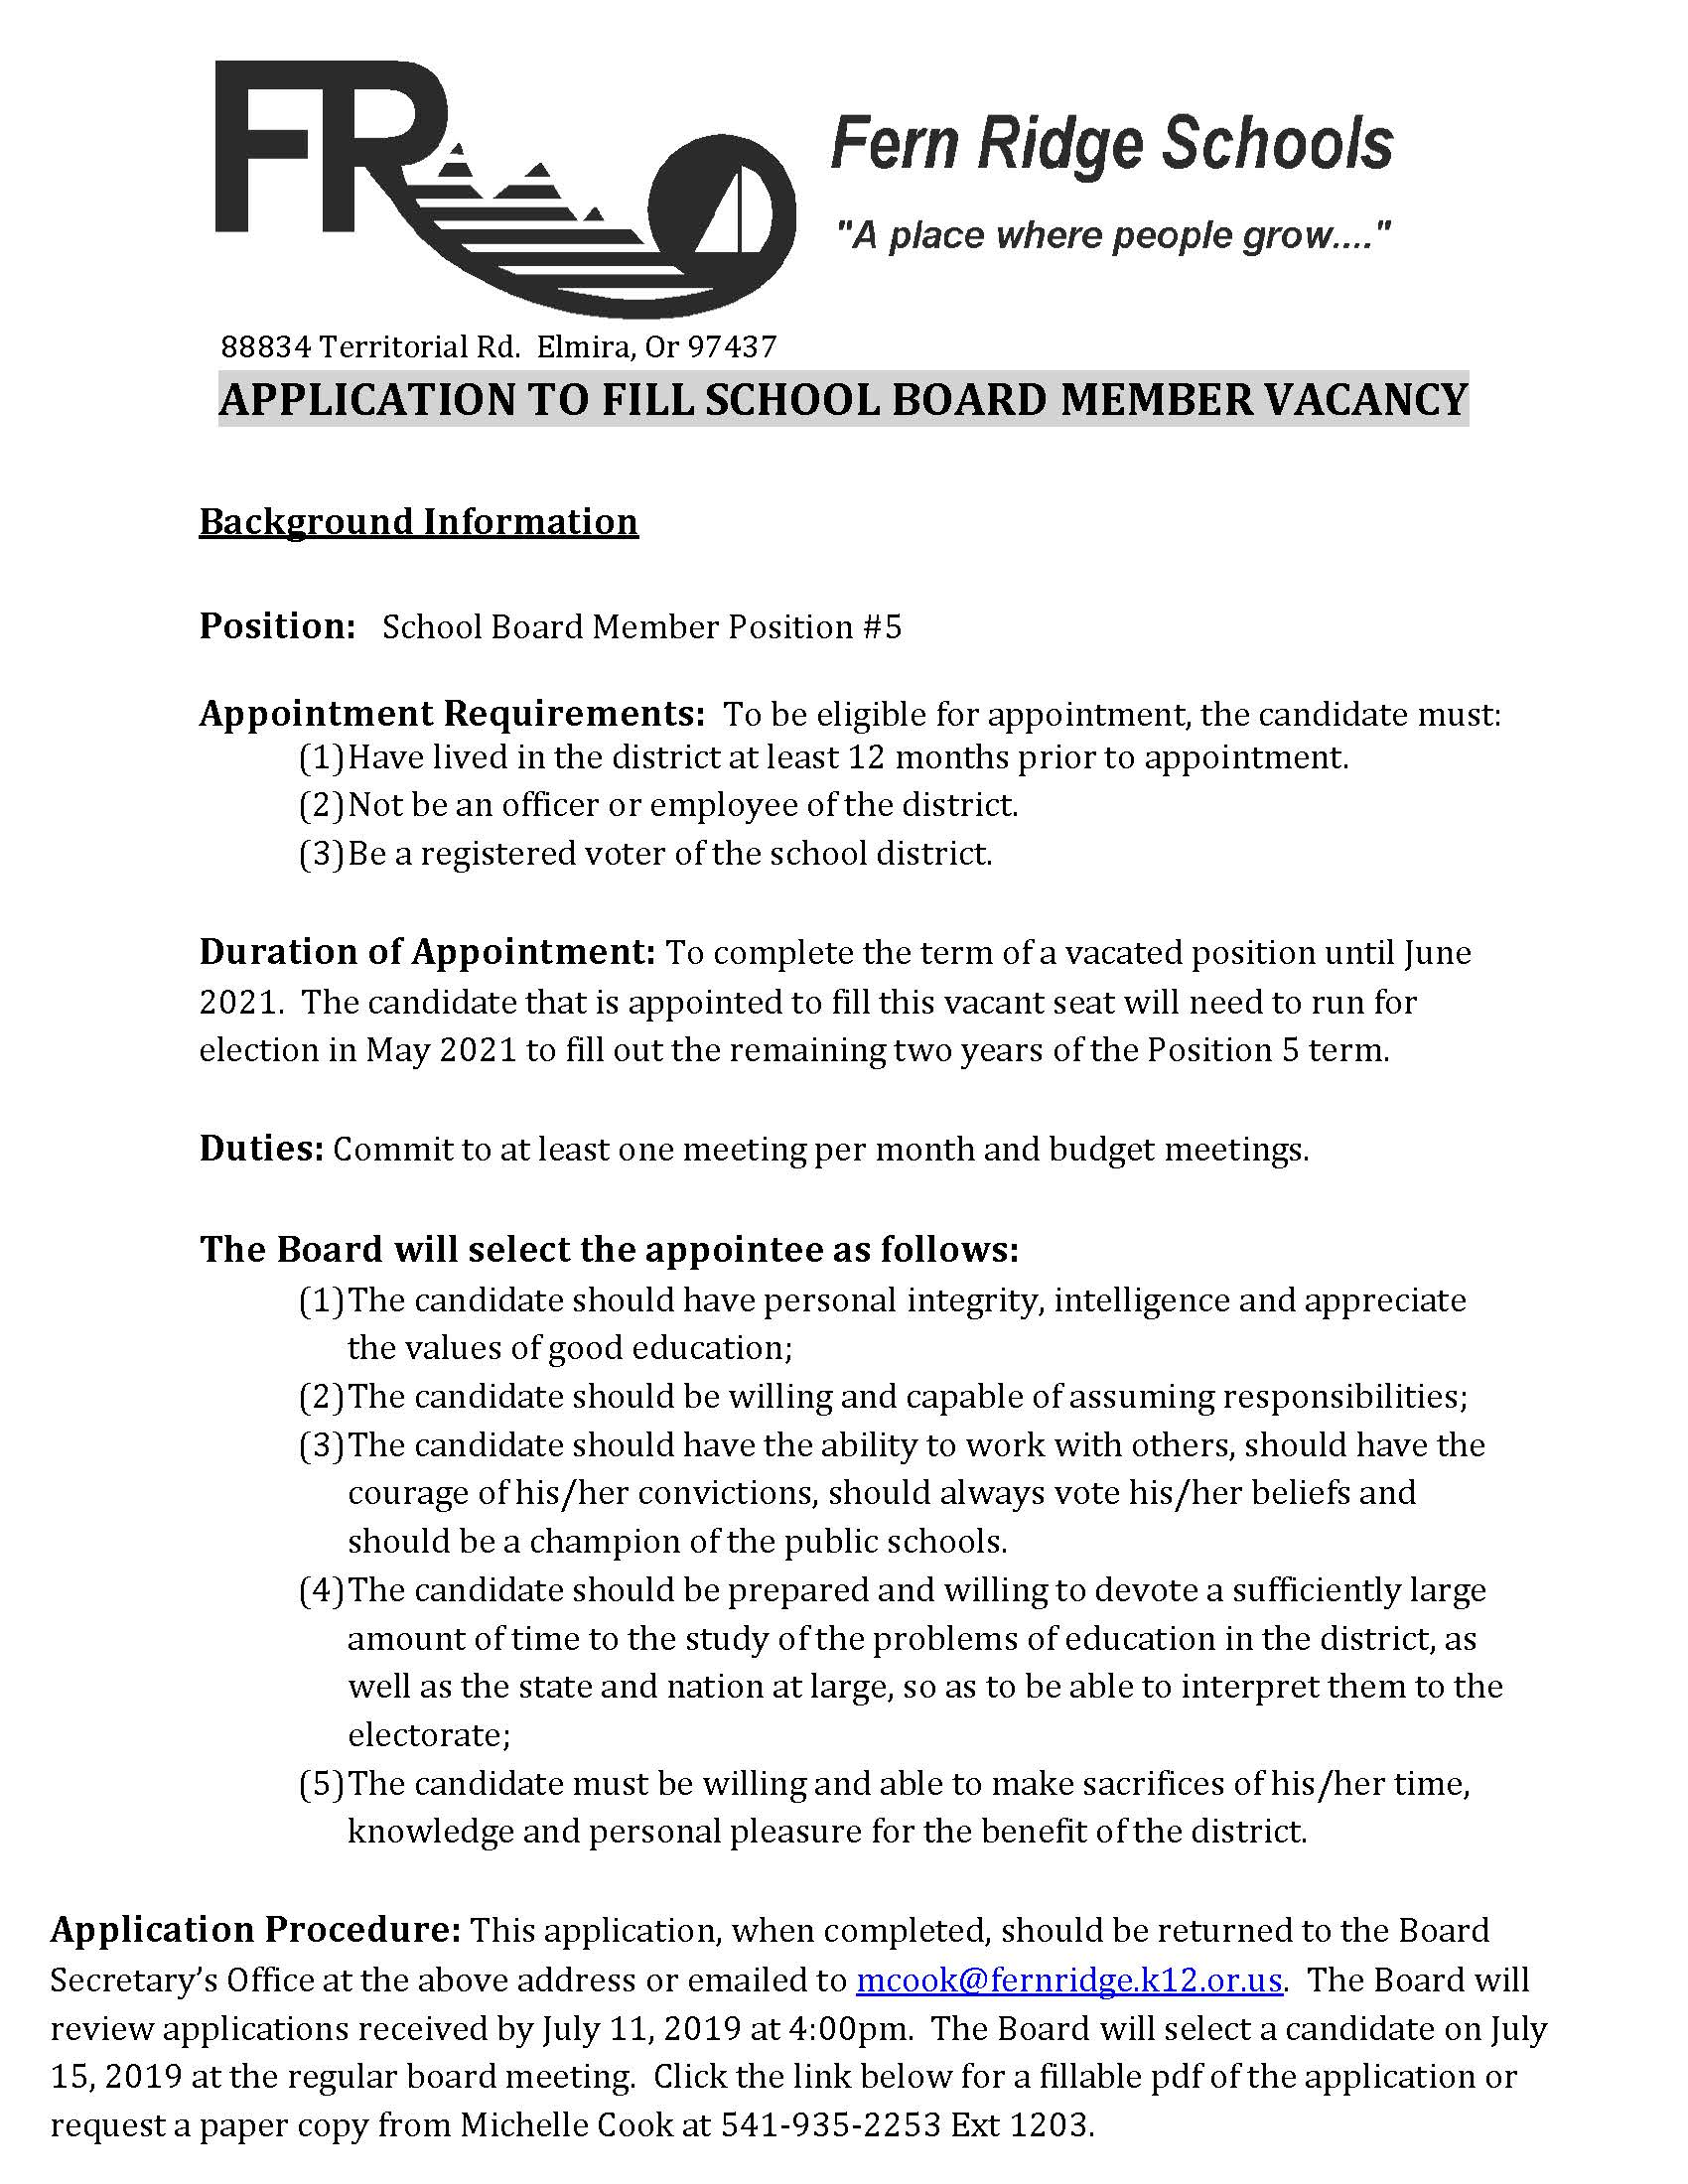 School Board Vacancy Information